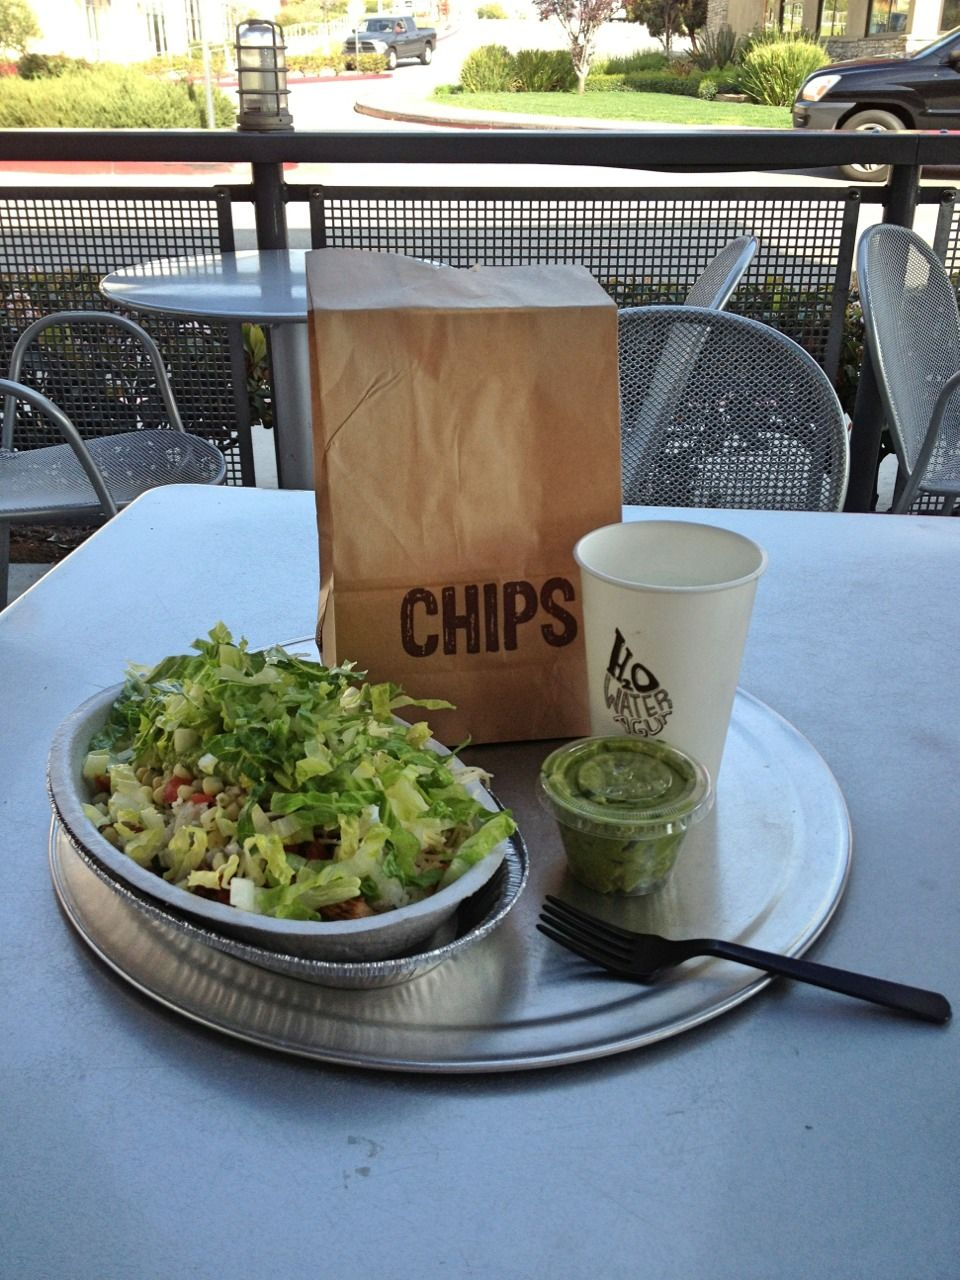 The Original Chipotle Love Chipotle America Pinterest